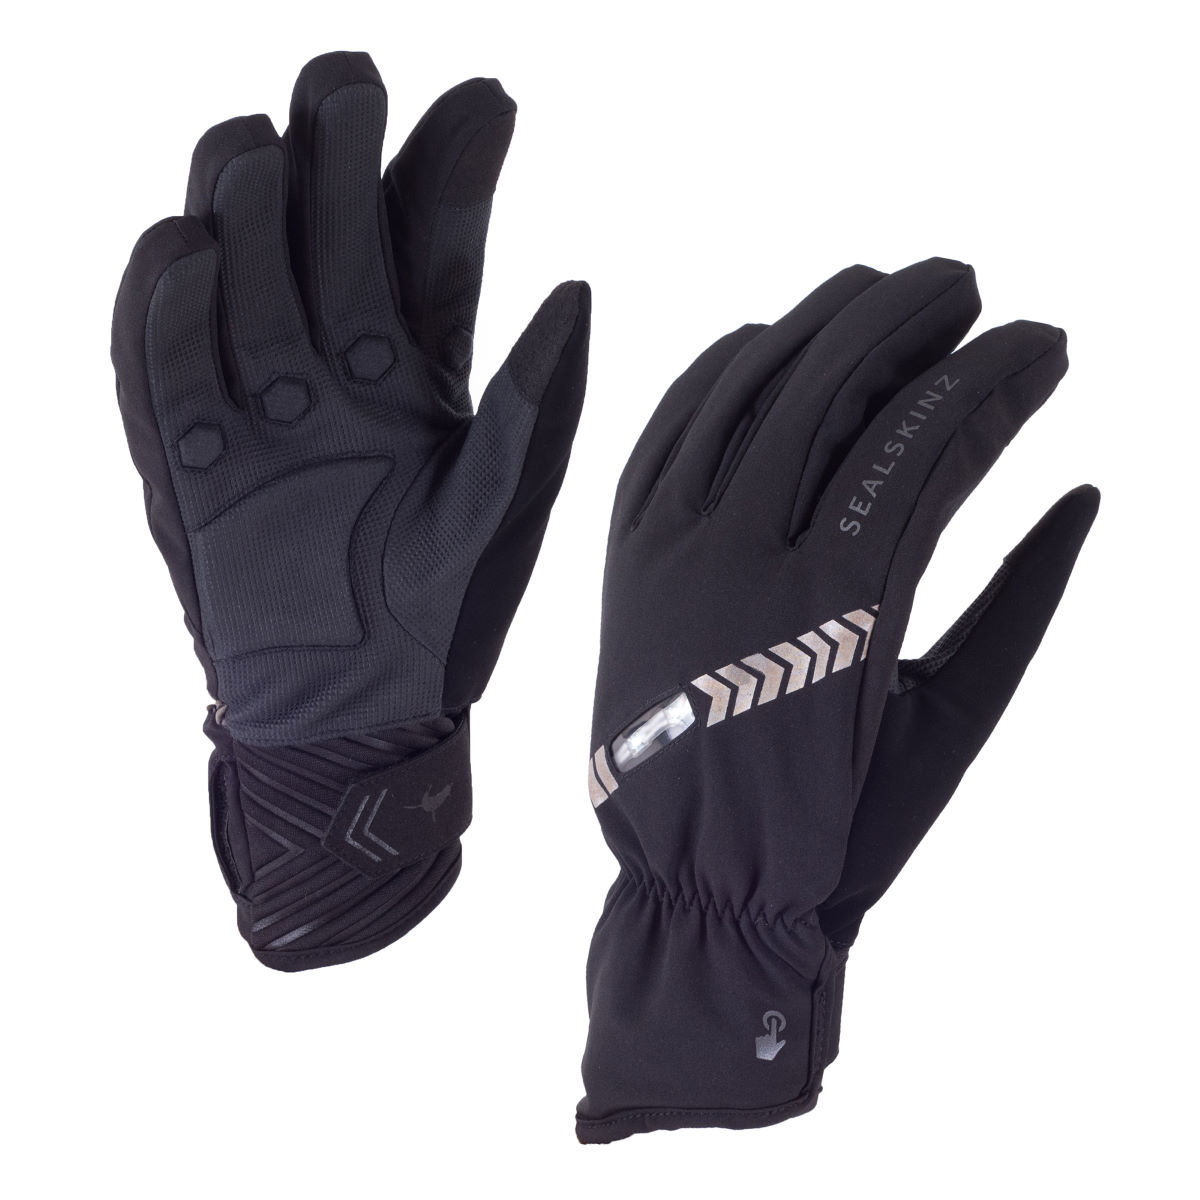 Gants cyclistes SealSkinz Halo All Weather - M Noir/Charbon Gants